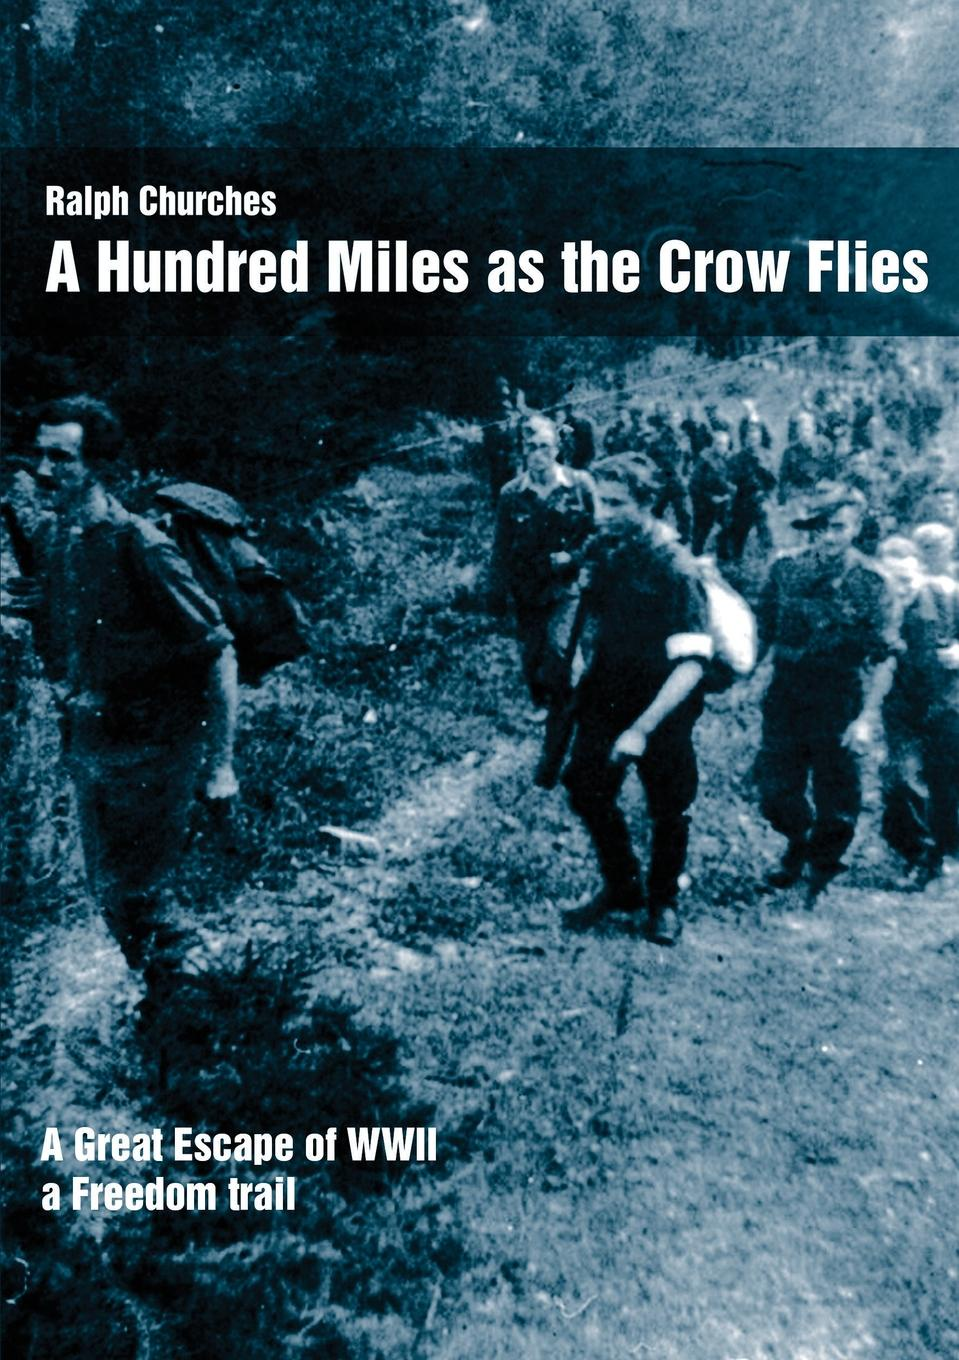 Ralph Churches A Hundred Miles As The Crow Flies. A Great Escape of WWII five lines of detox 30g